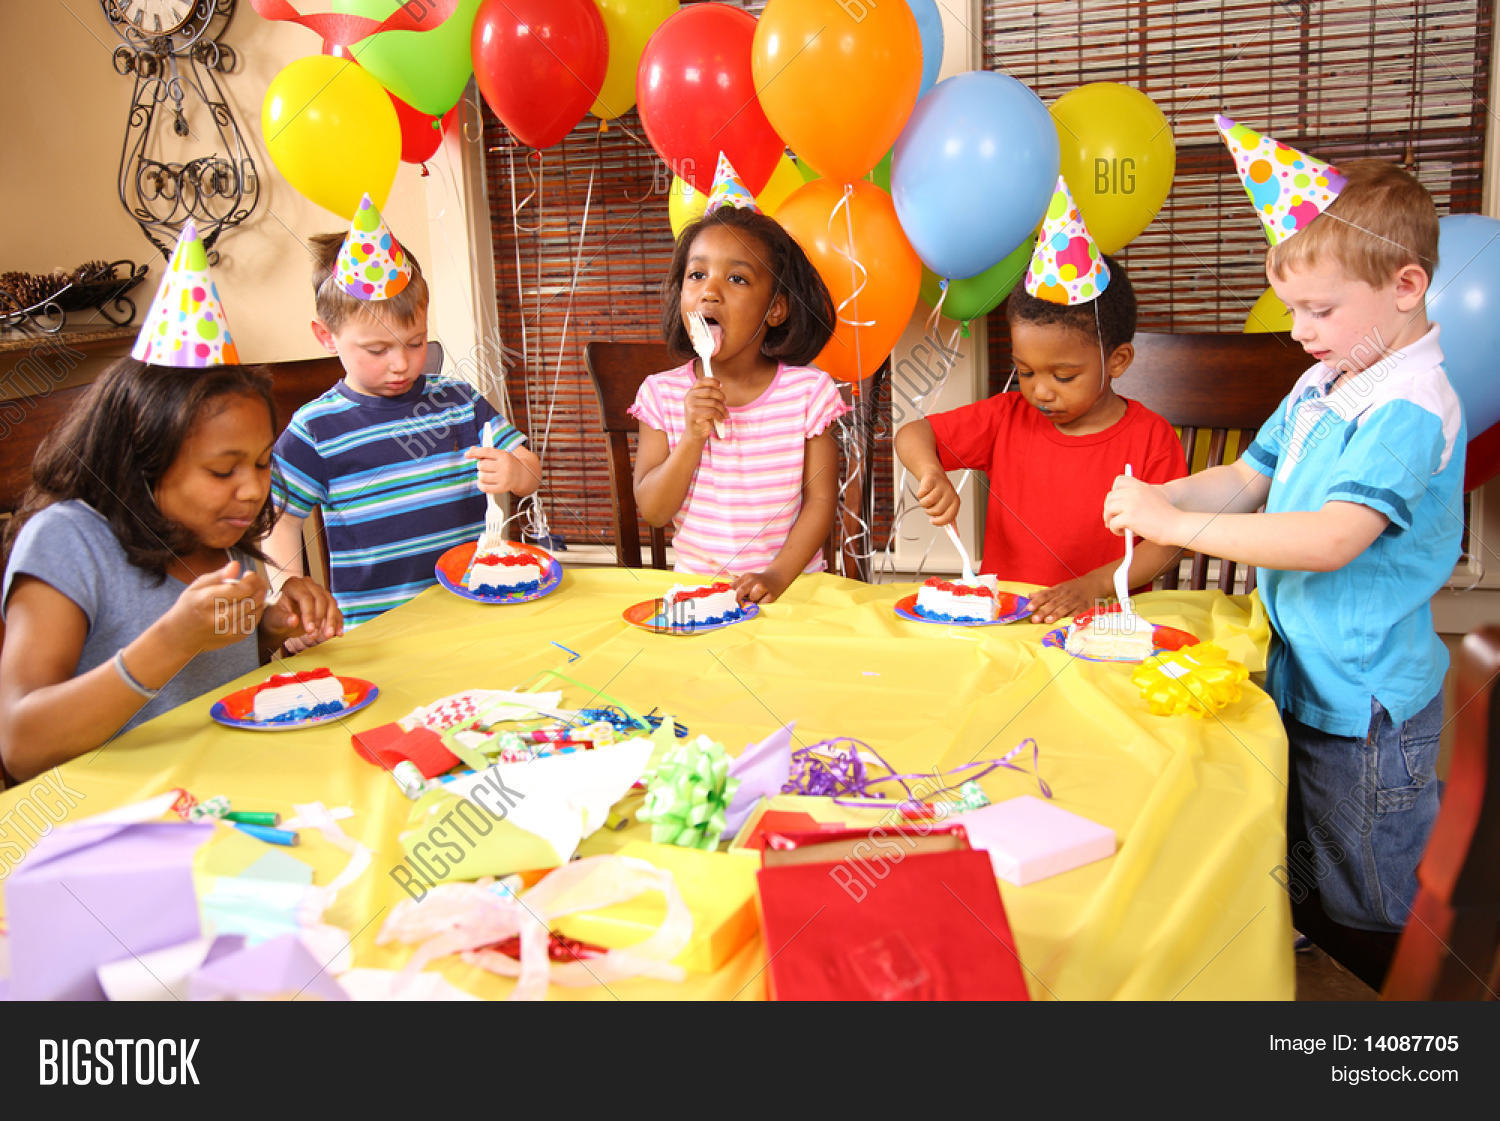 Miraculous Group Children Eating Image Photo Free Trial Bigstock Funny Birthday Cards Online Inifofree Goldxyz